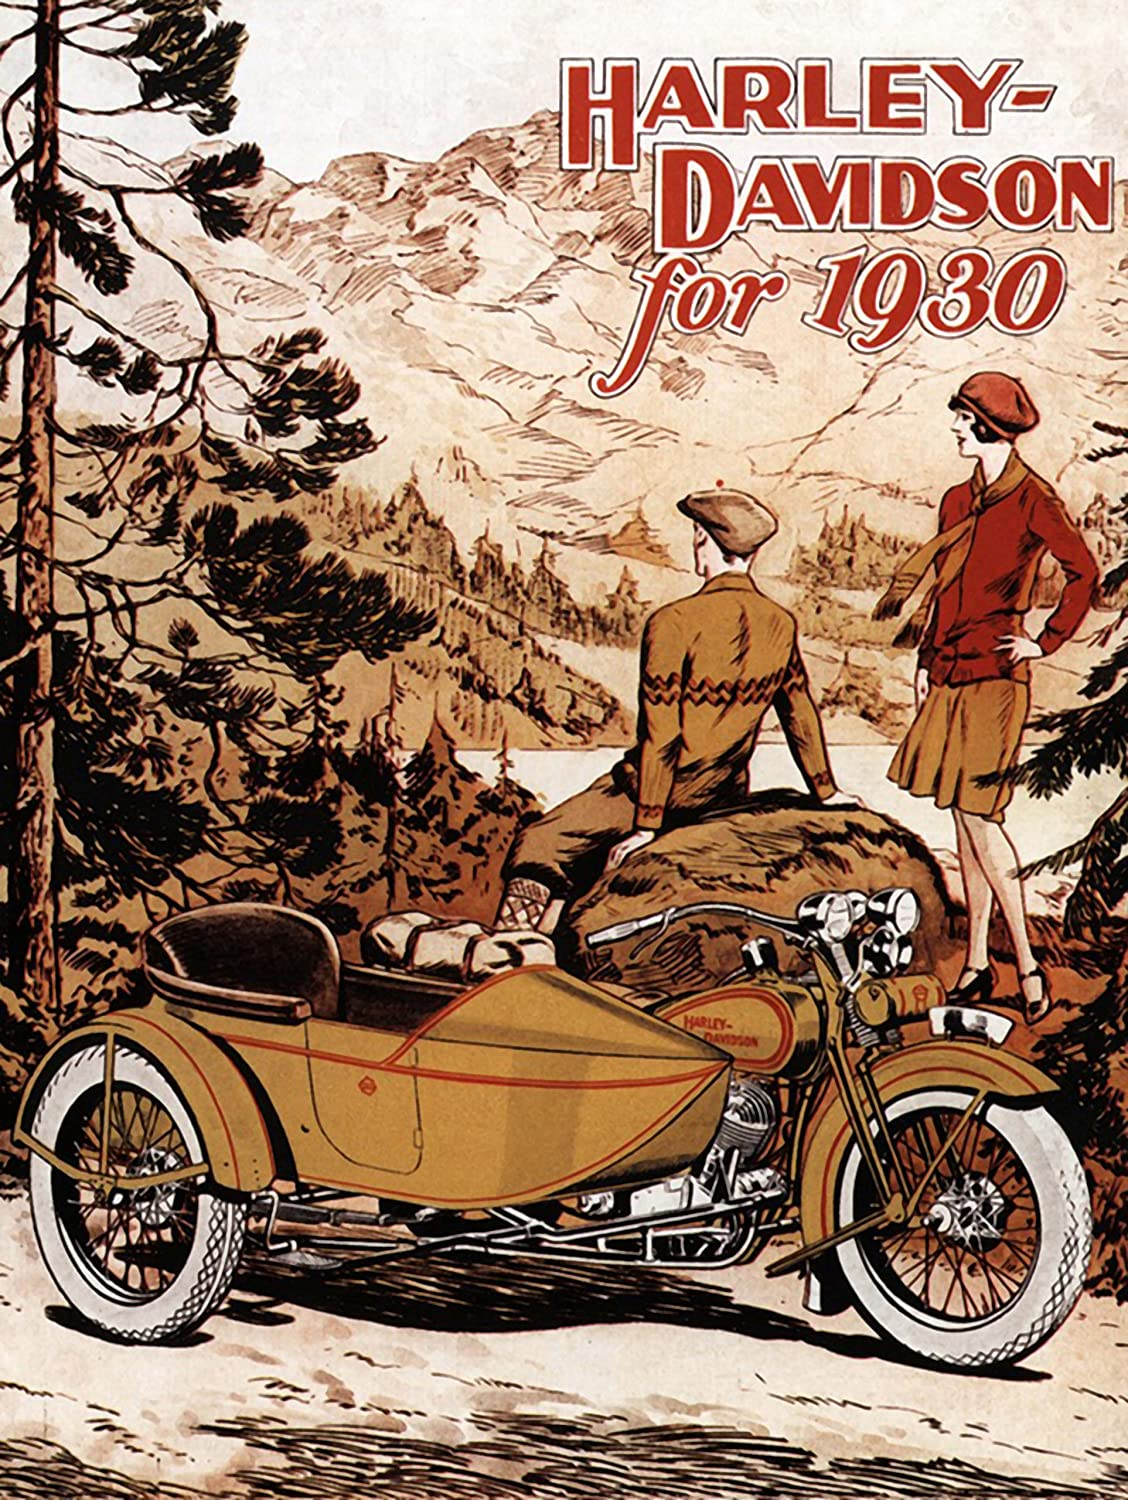 ADVERTISEMENT HARLEY DAVIDSON 1930 MOTORCYCLE BIKE ART PRINT ...